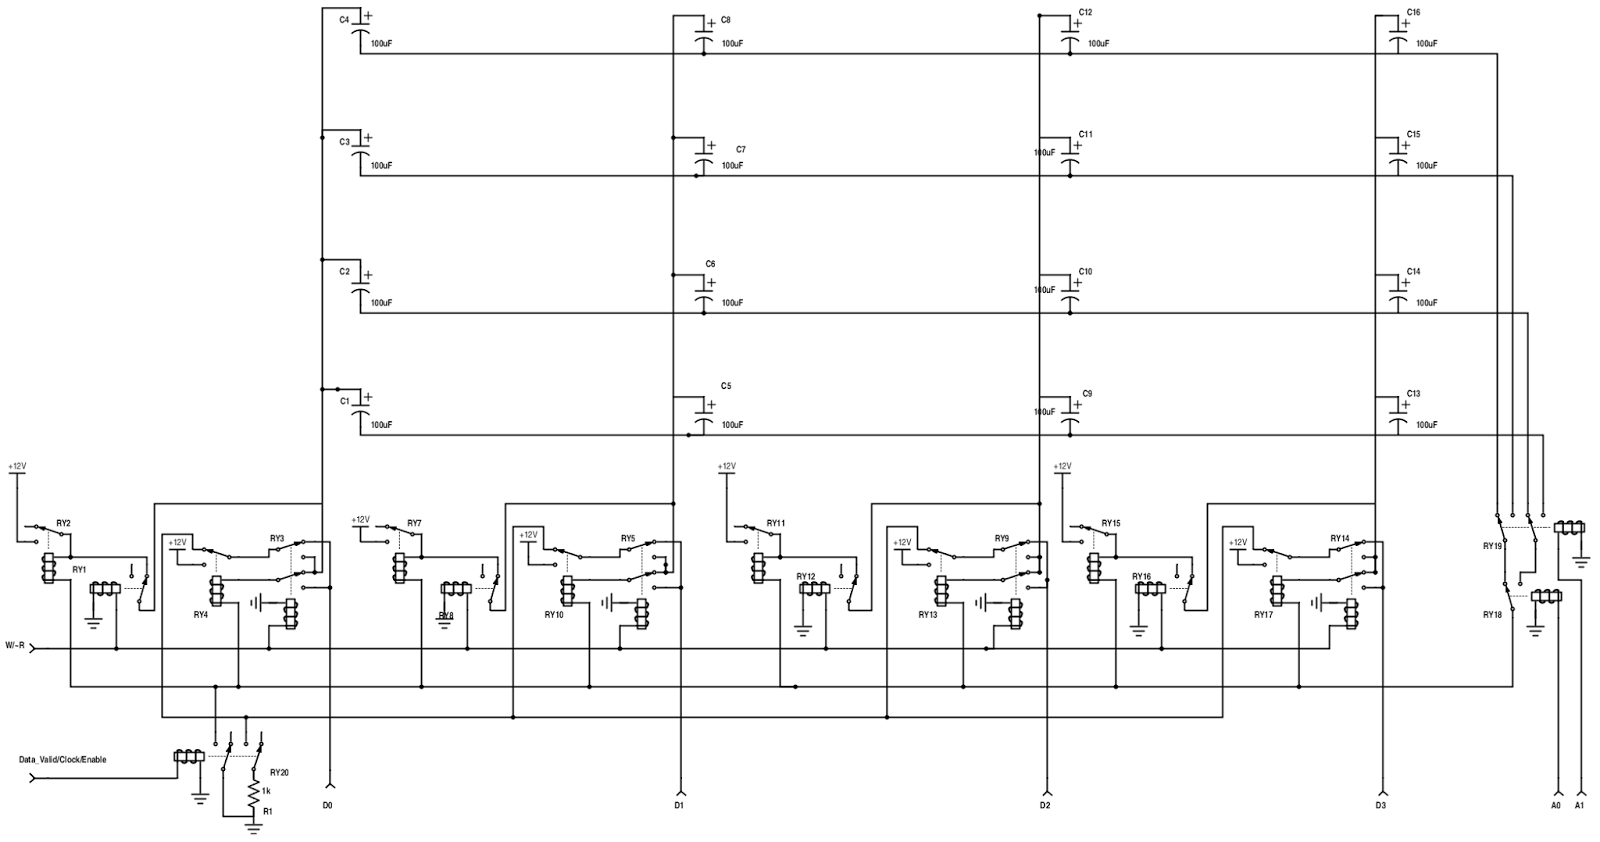 hight resolution of this circuit is a 4 x 4 bit example of the design but hopefully you can see how it scales for a 16 bit 128 word memory the above circuit would require